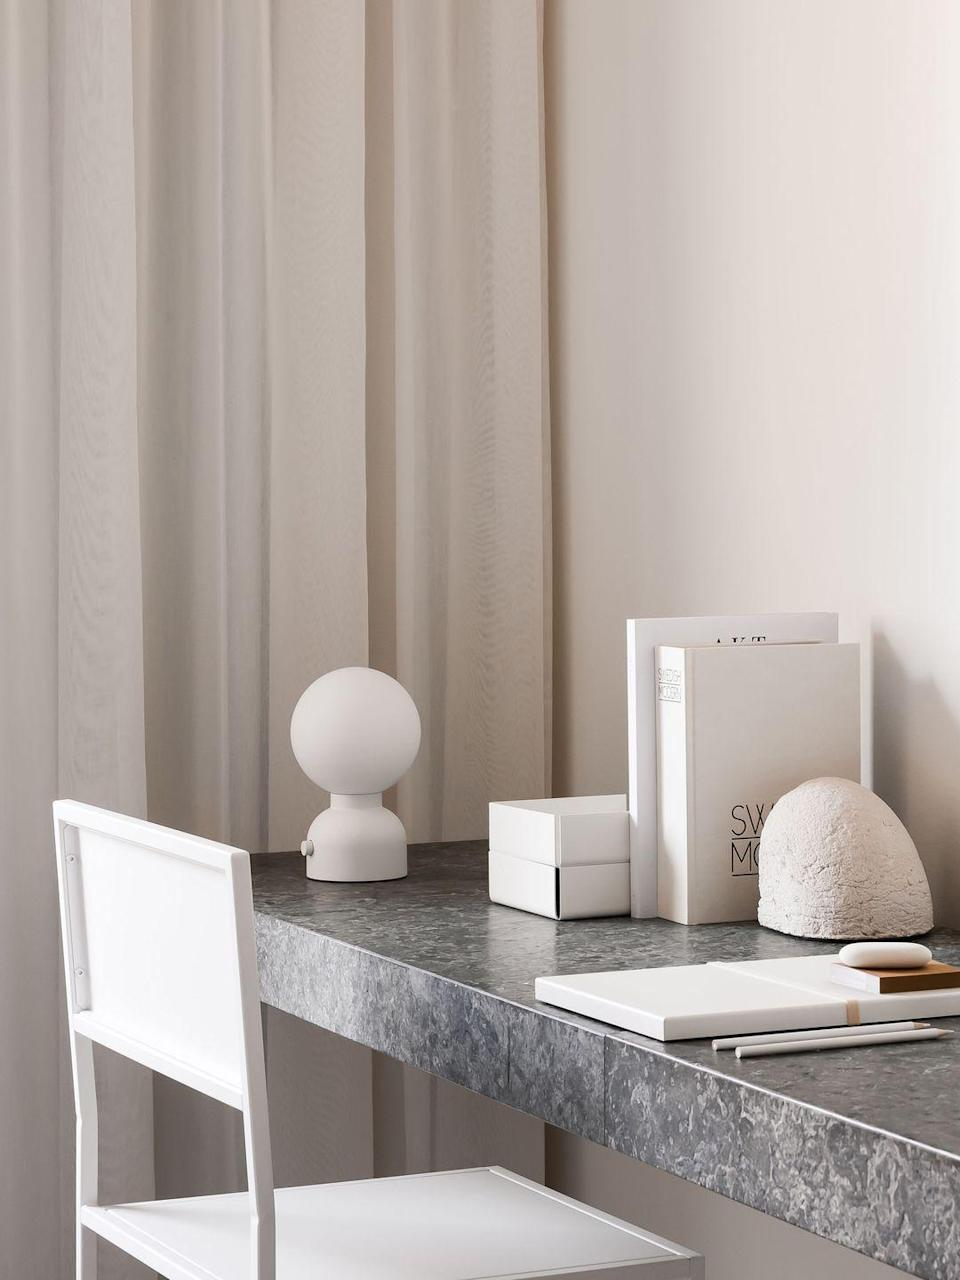 """<p> Designed by Form Us With Love for lighting brand Ateljé Lyktan, the 'Pluggie' table lamp is dimmable, portable and has two USB ports to charge devices from, making it an ideal desk companion. £129, <a href=""""https://www.ateljelyktan.se/en"""" rel=""""nofollow noopener"""" target=""""_blank"""" data-ylk=""""slk:ateljelyktan.se/en"""" class=""""link rapid-noclick-resp"""">ateljelyktan.se/en</a></p>"""